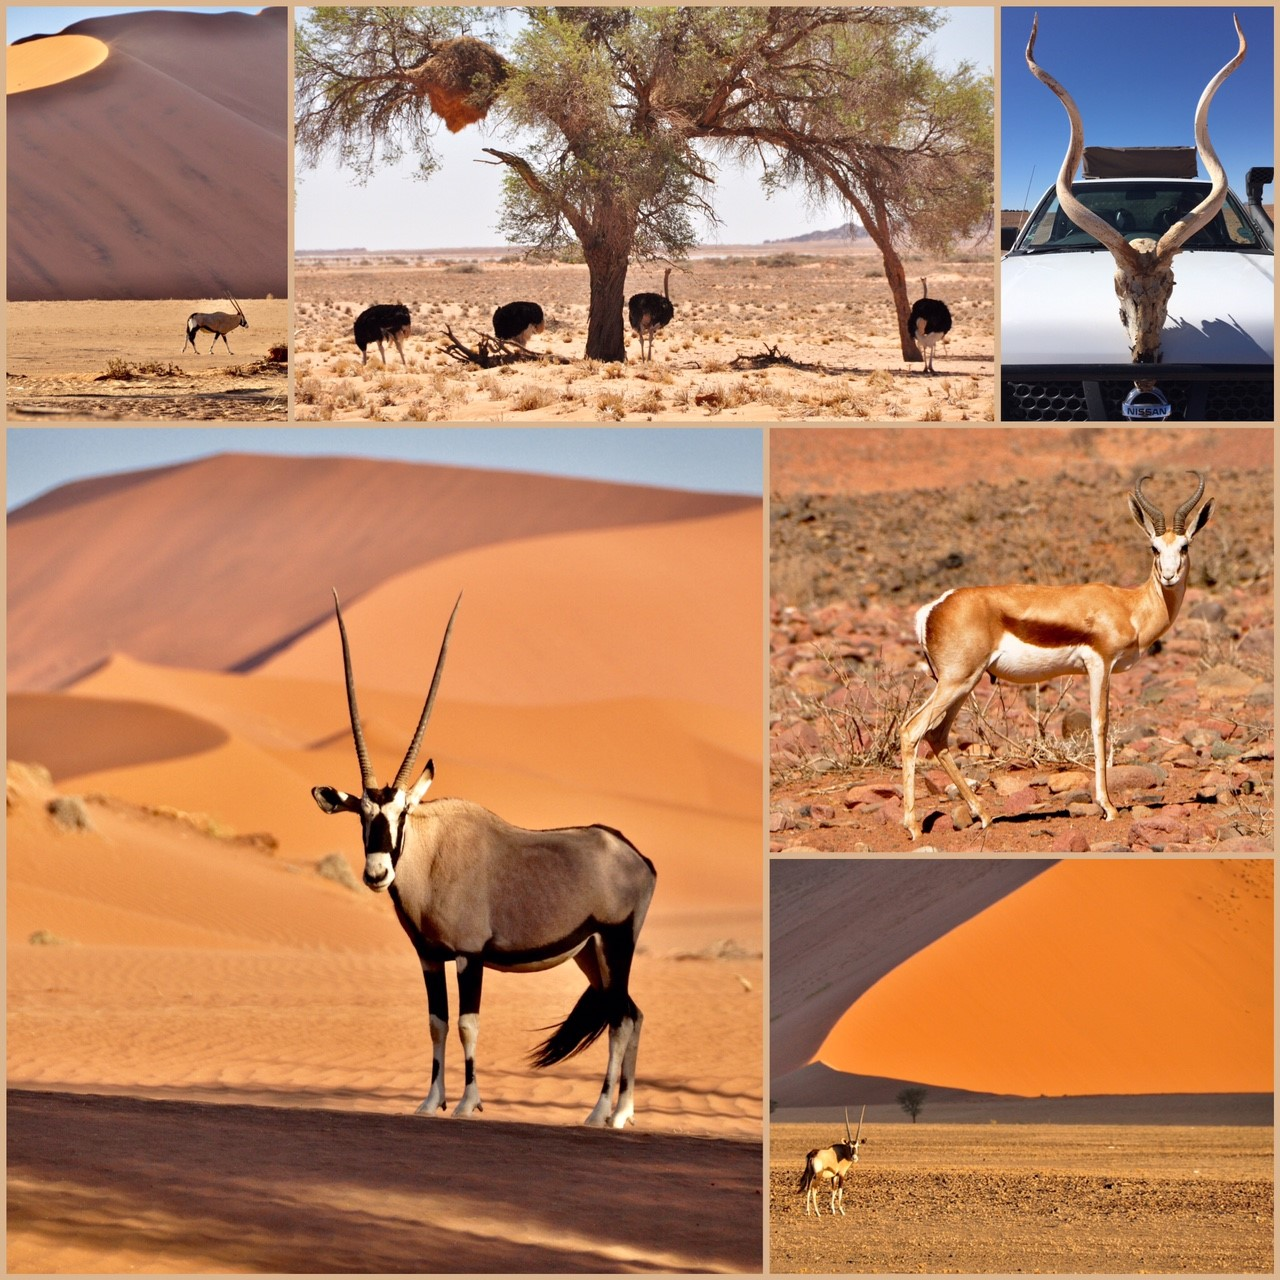 Namibie désert animaux sauvages